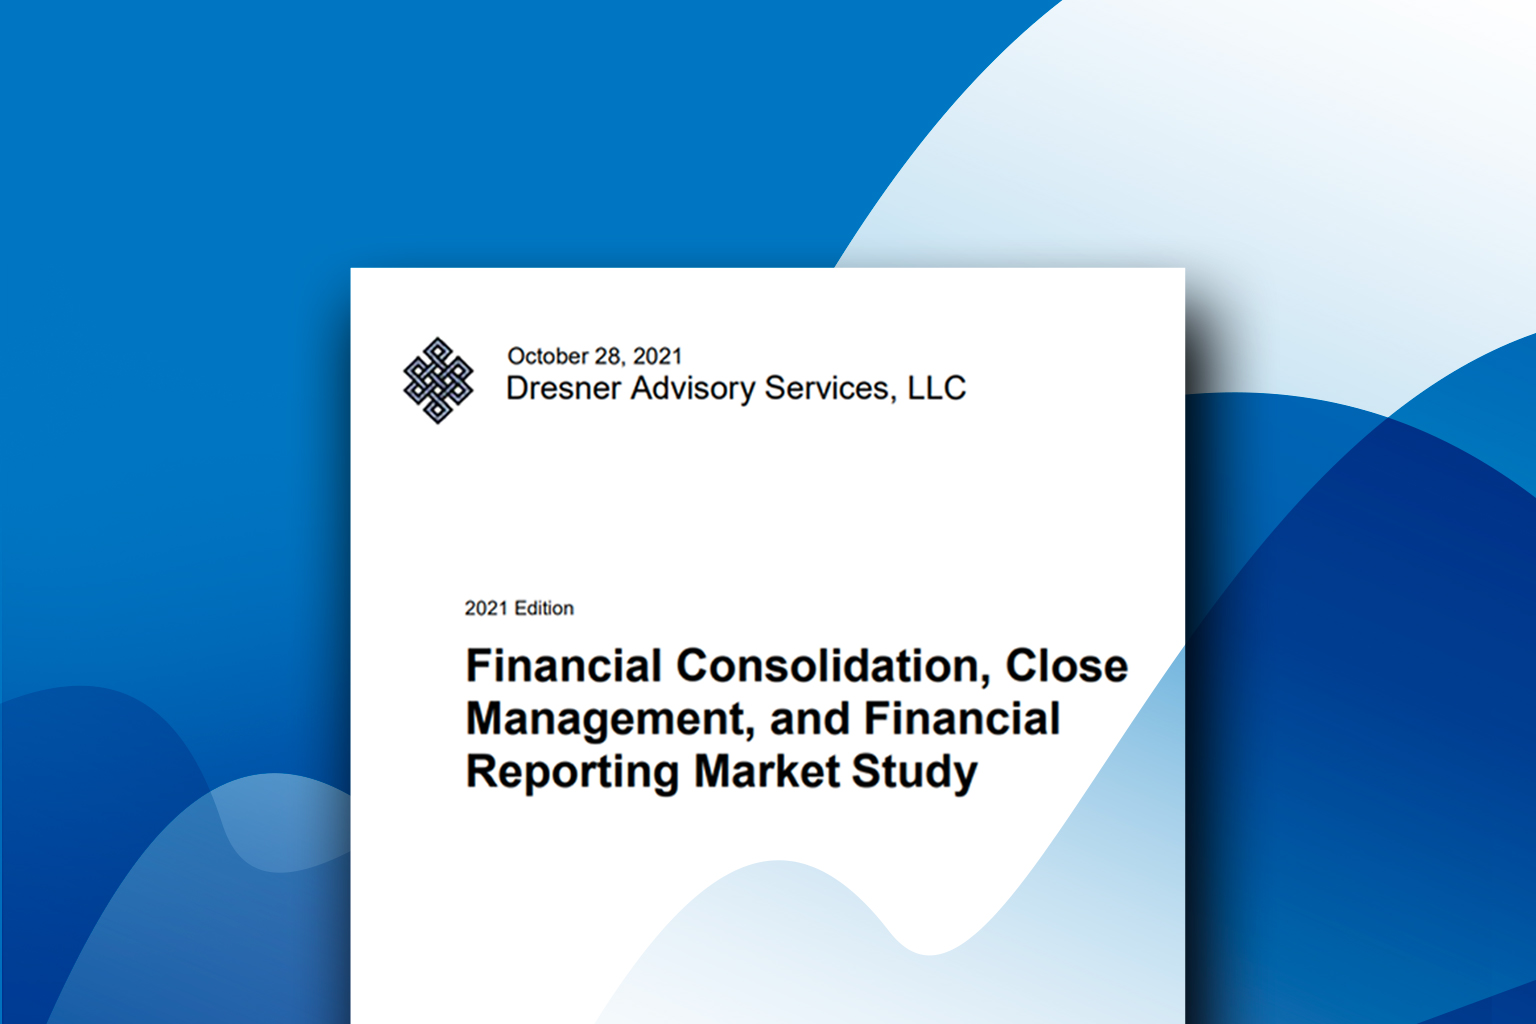 CCH® Tagetik 1st among vendors in Dresner's Financial Consolidation, Close Management, and Financial Reporting Market Study